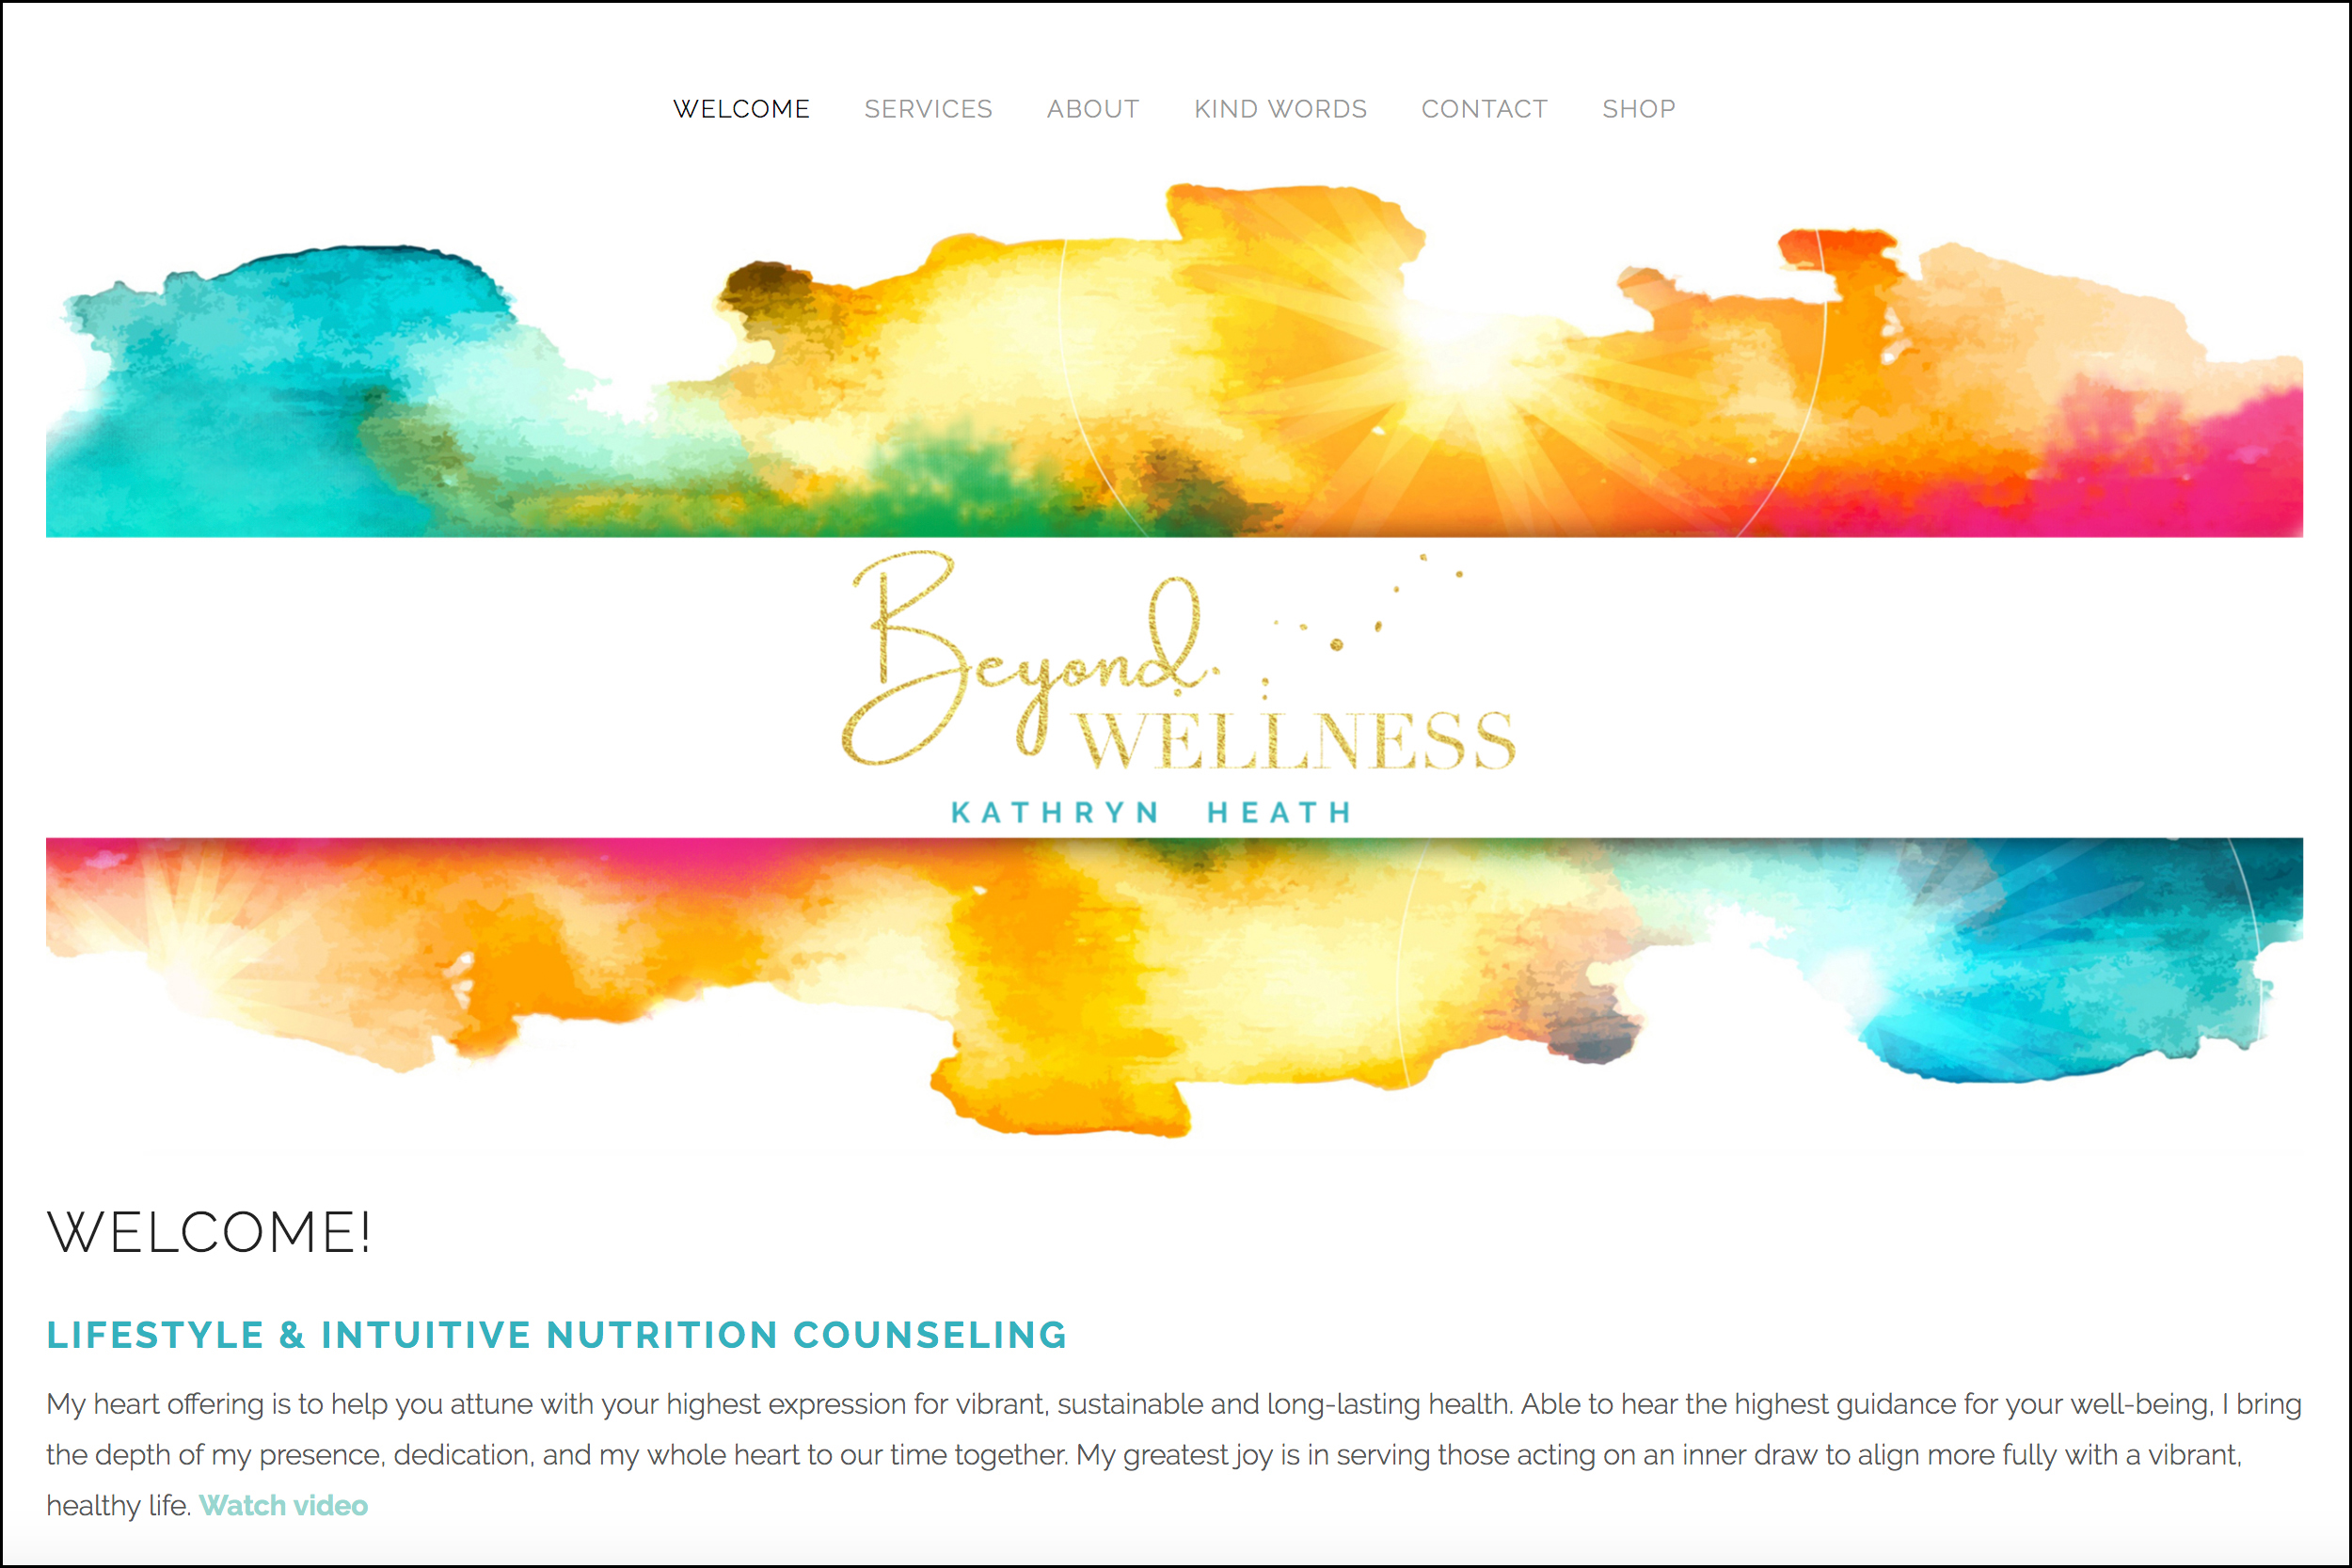 Kathryn-Heath_Beyond-Wellness_Website-Design_by-Laurie-Nelson